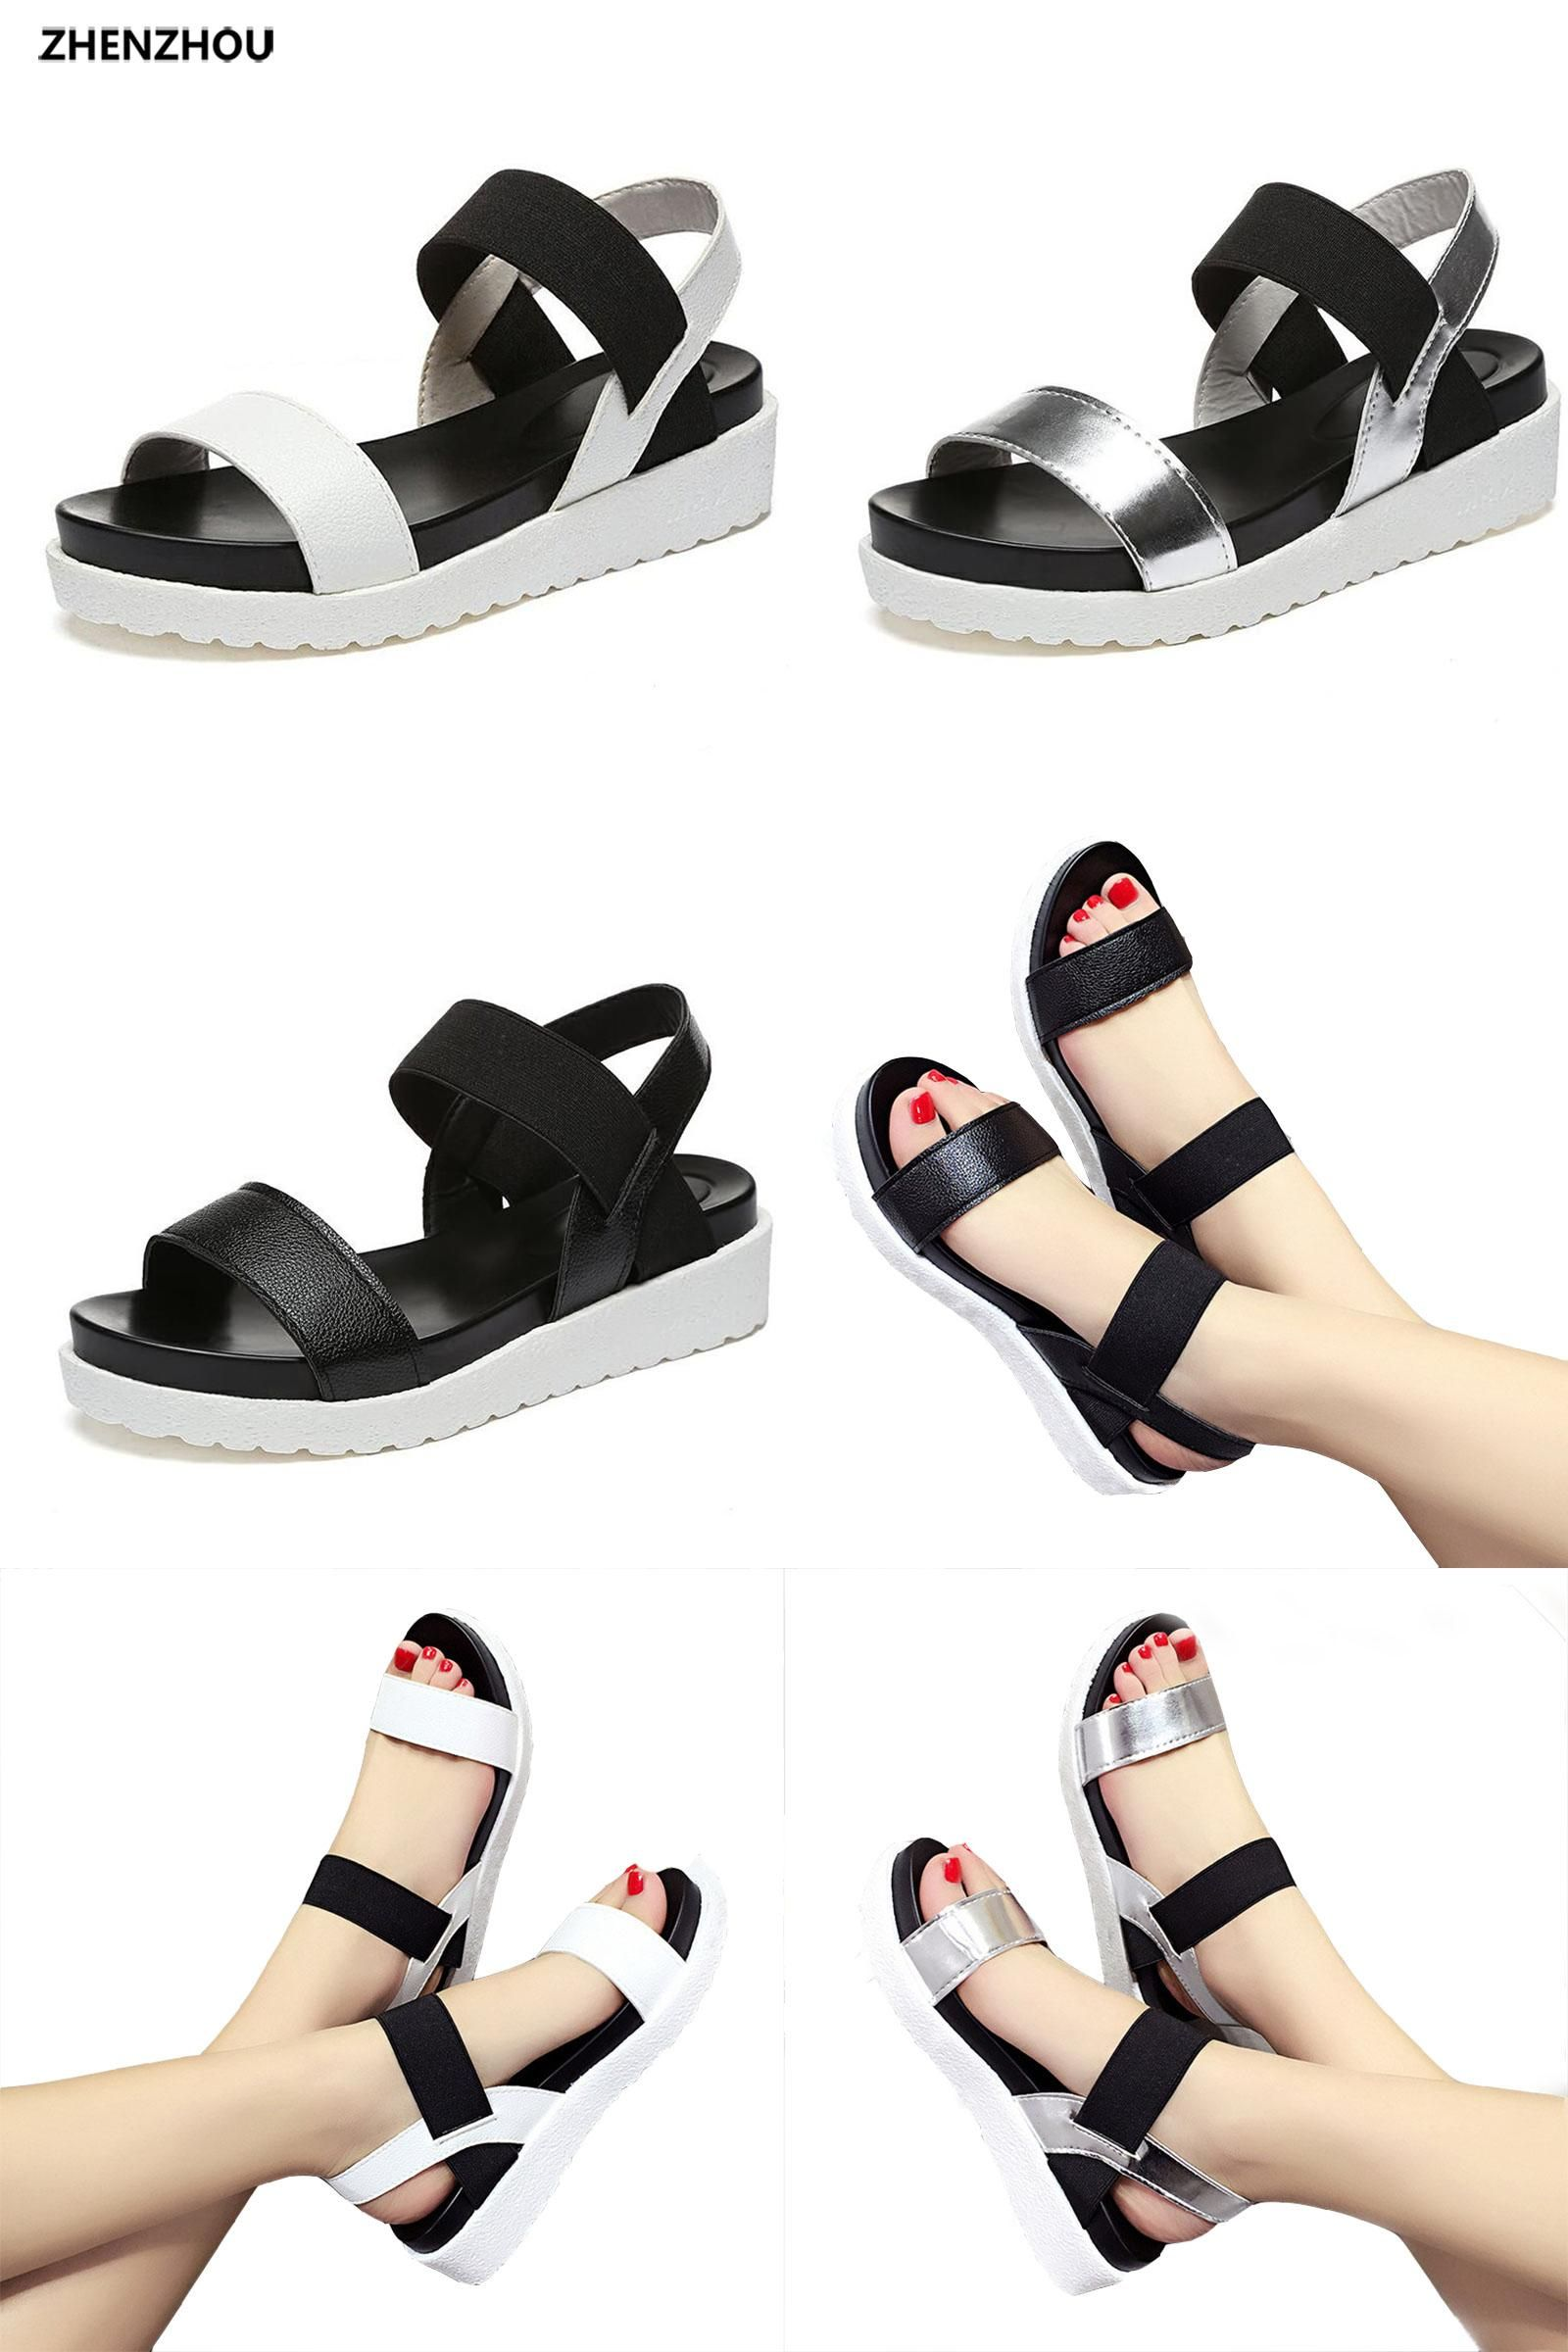 06026409d8be69  Visit to Buy  NEW Hot Selling sandals women Summer shoes woman 2016 peep-